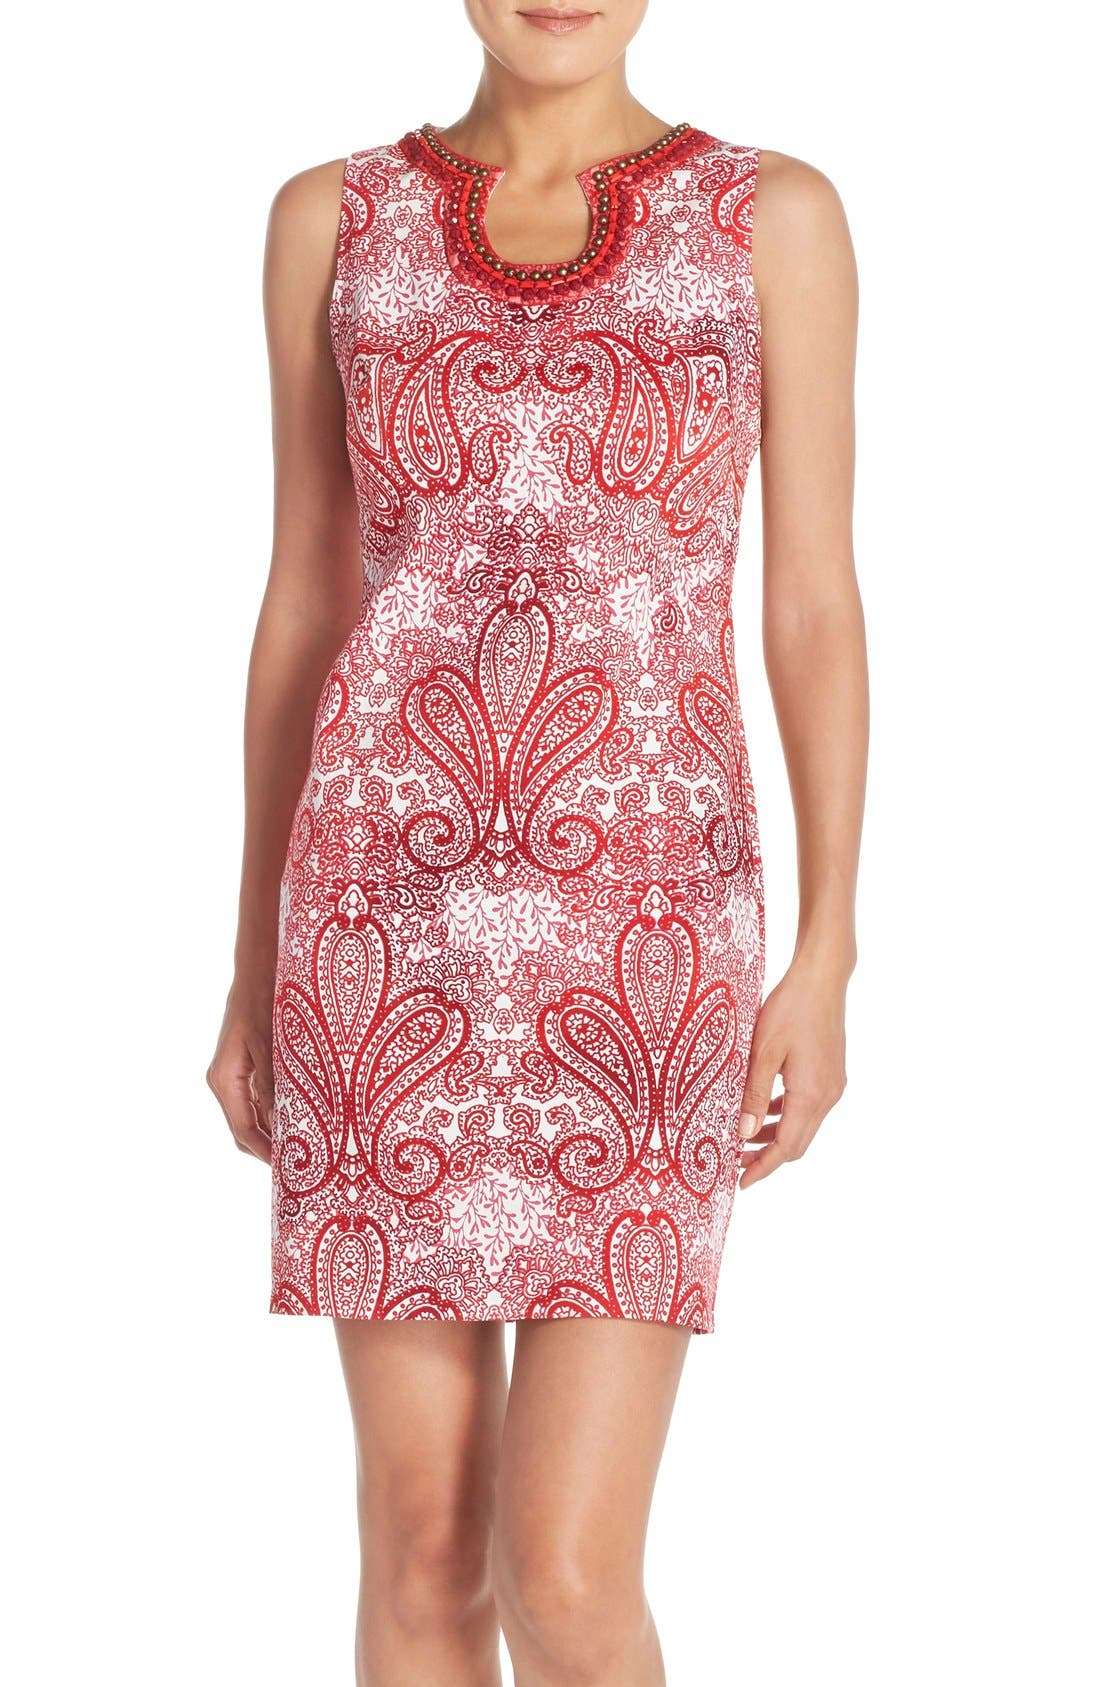 Main Image - London Times 'Regal Ombré' Embellished Paisley Print Sleeveless Shift Dress